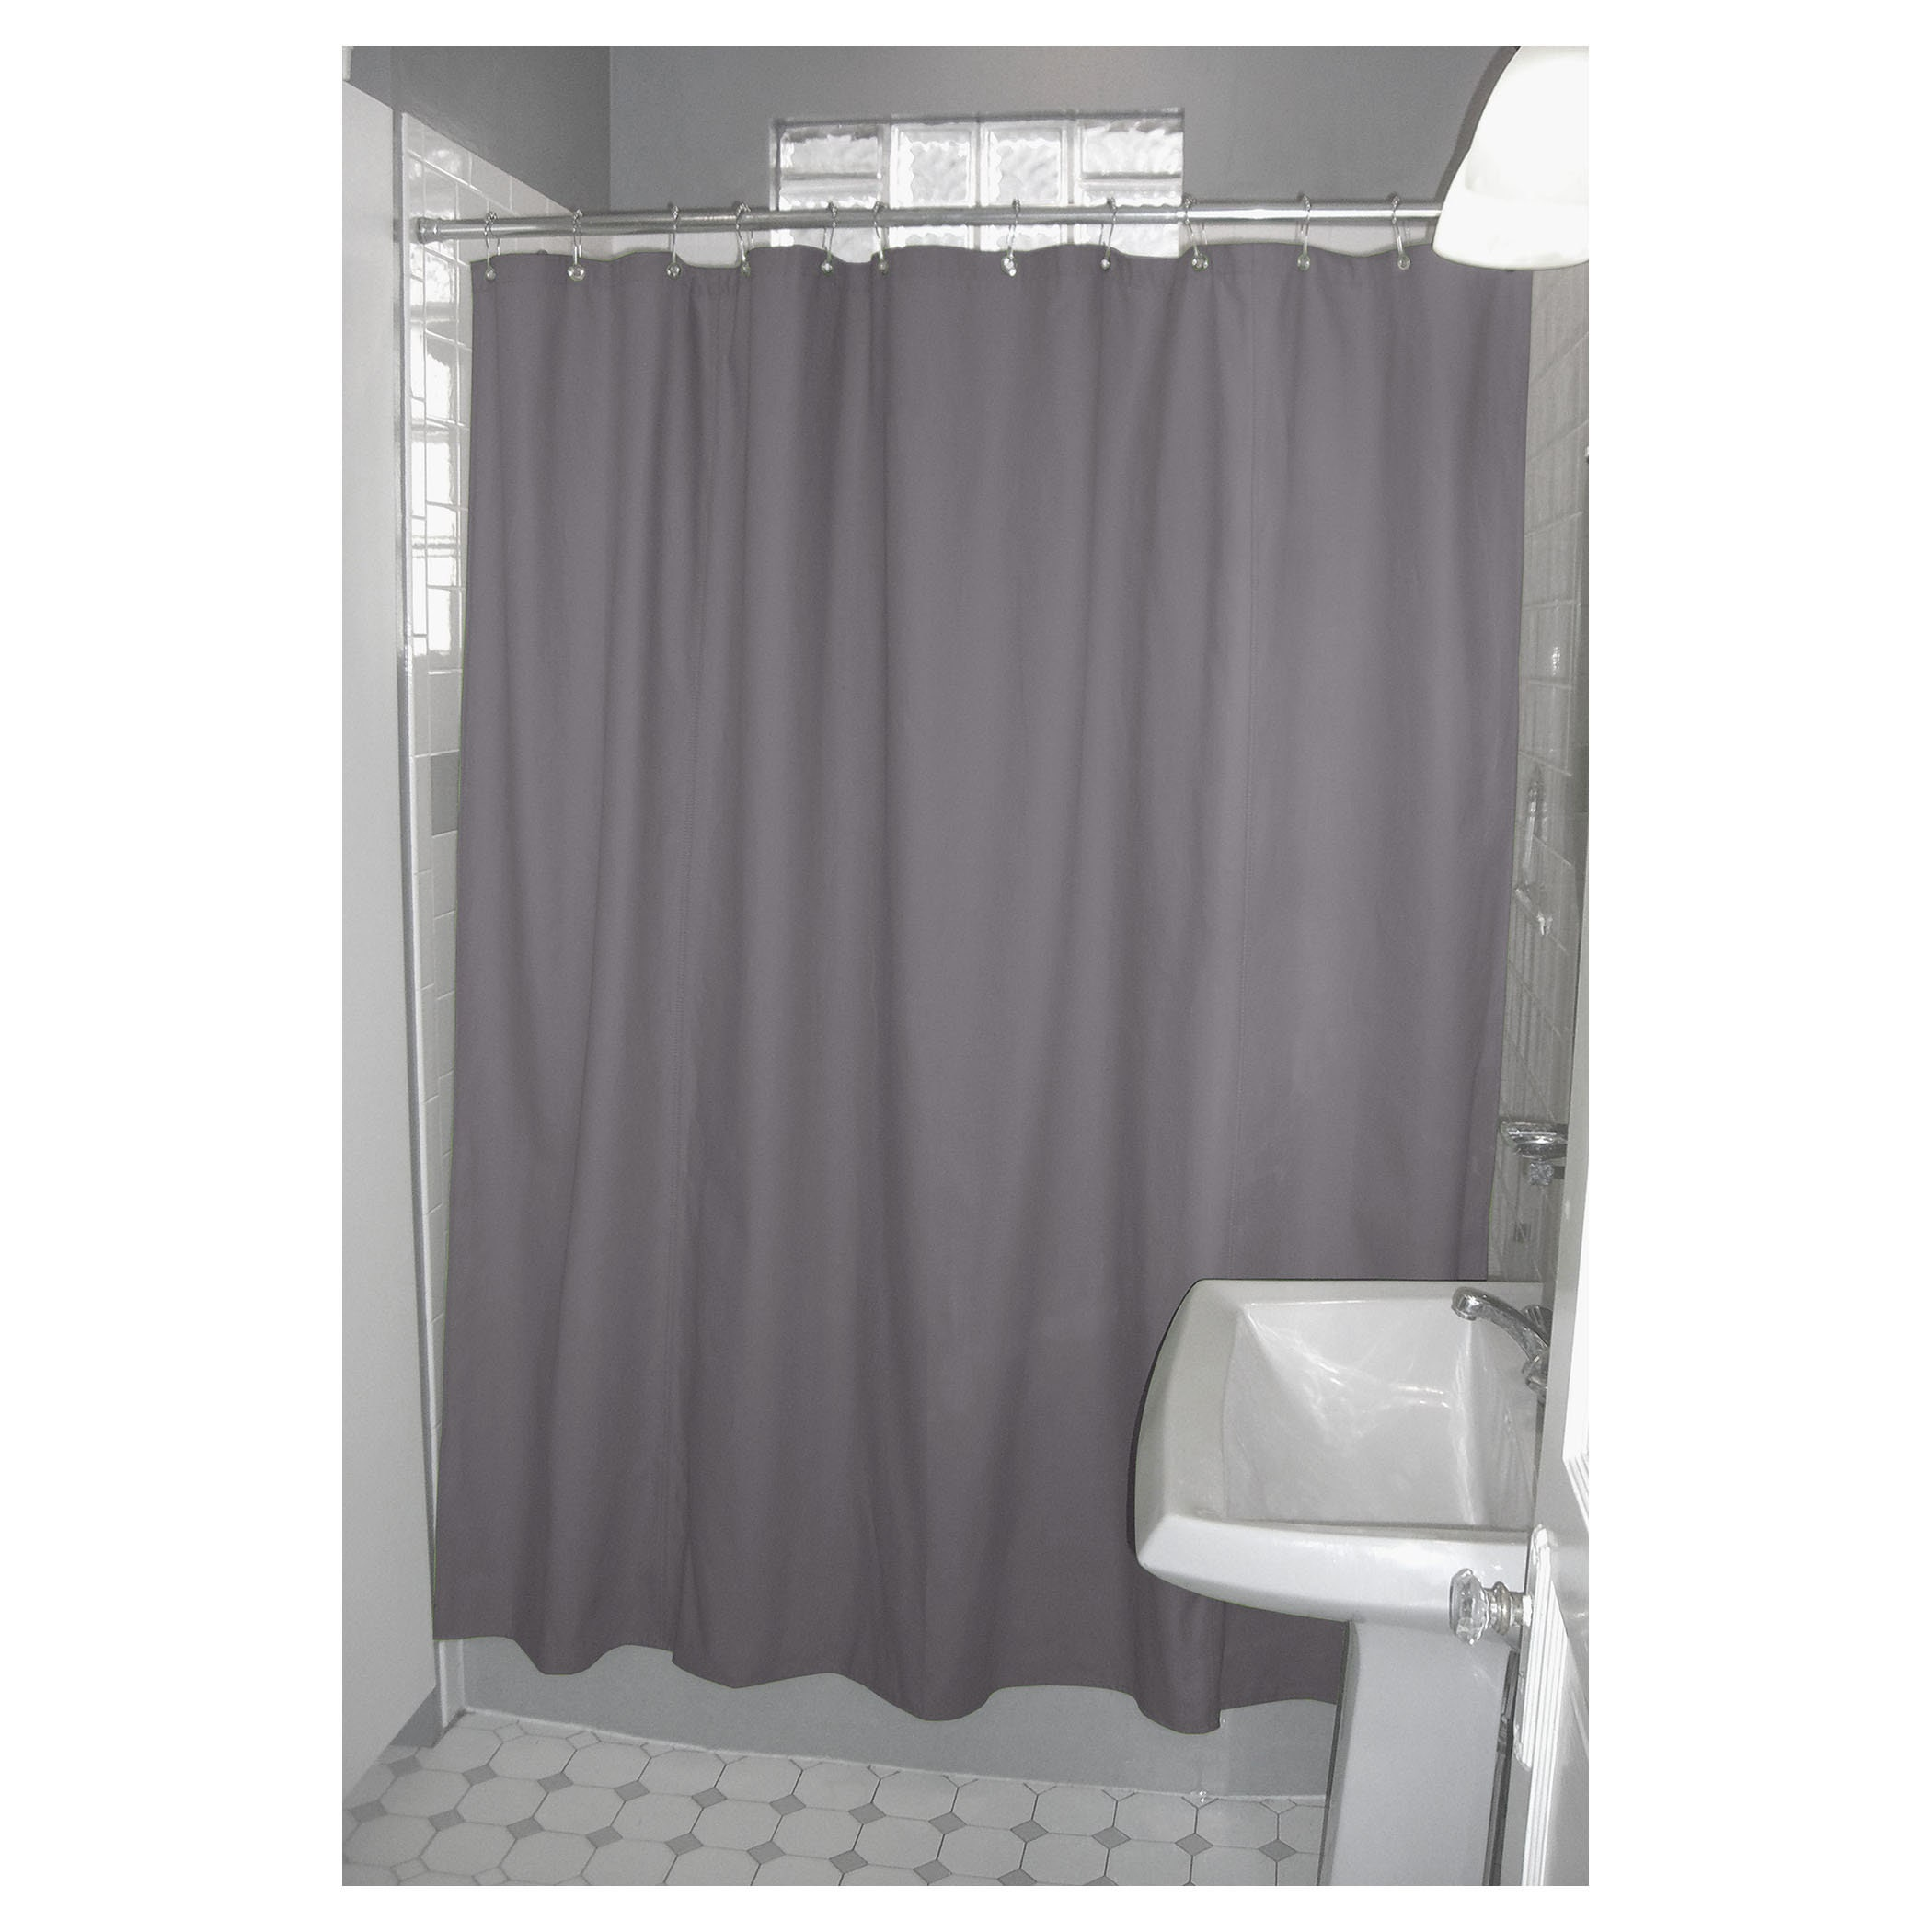 Organic Shower Curtain Three Sizes And Three Colors